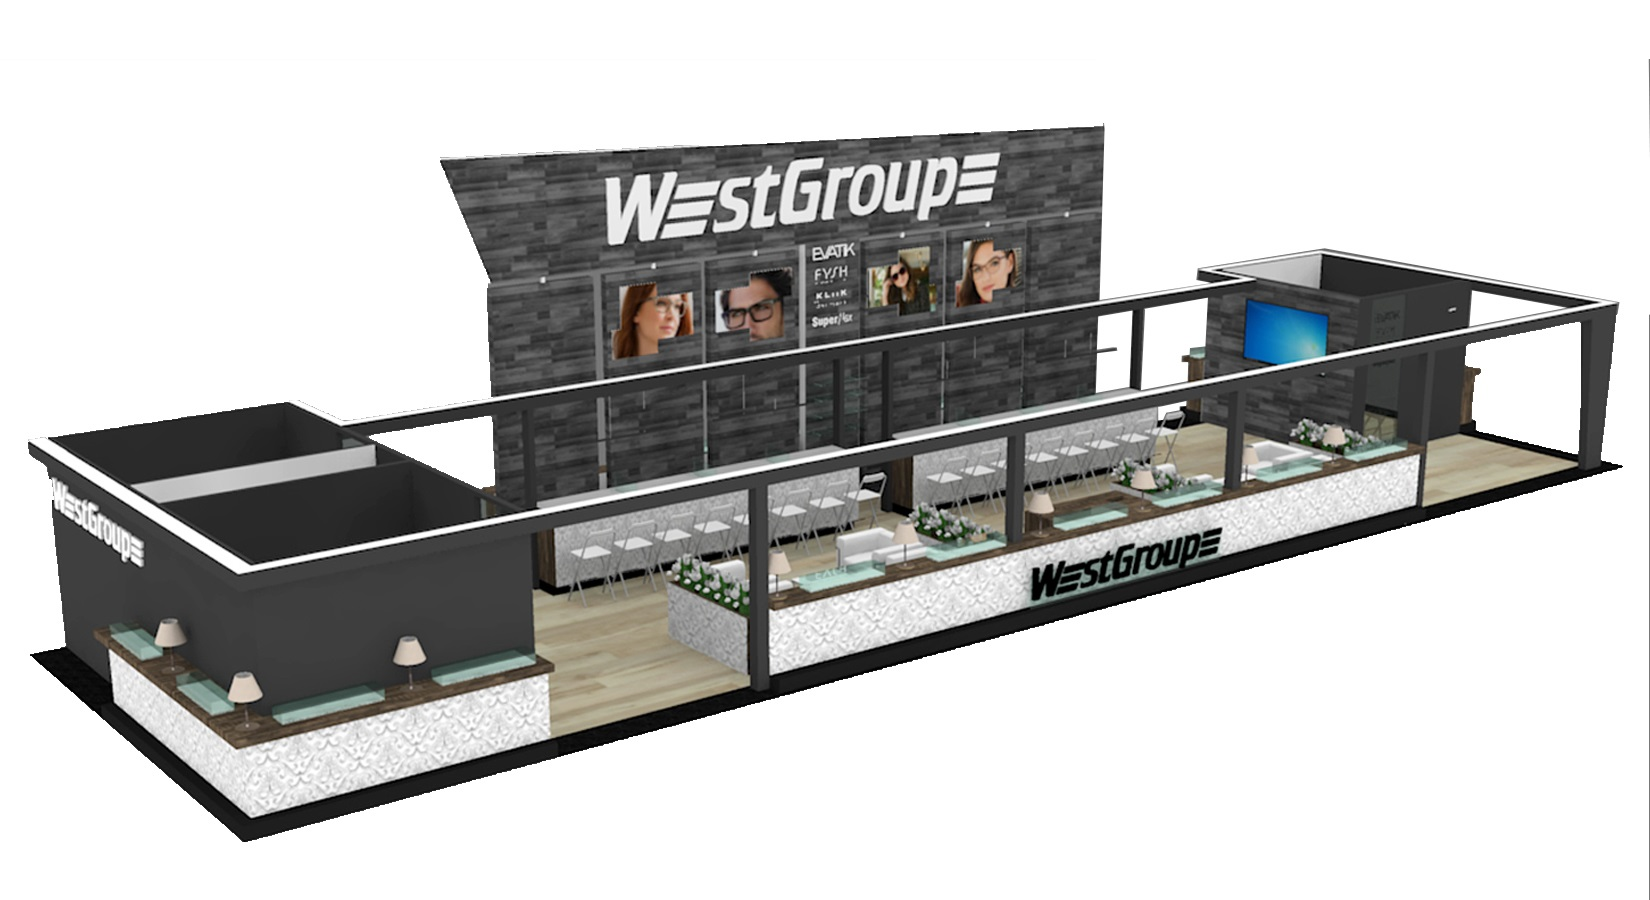 WestGroupe to unveil redesigned booth at VEE